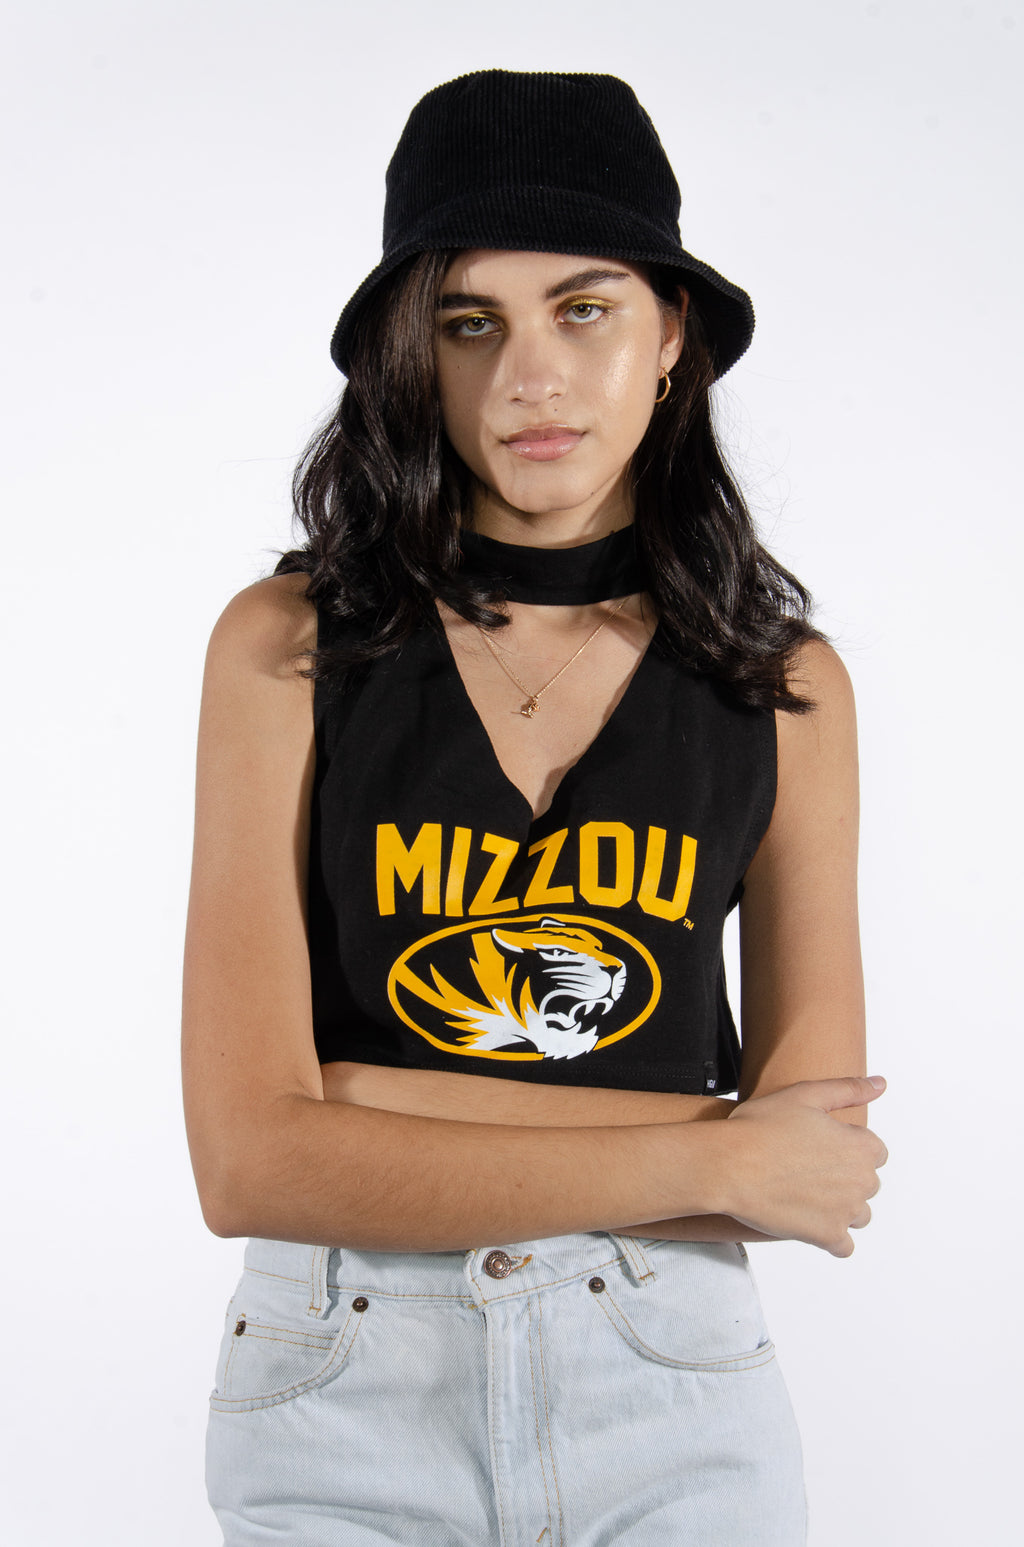 Mizzou Cutout Top